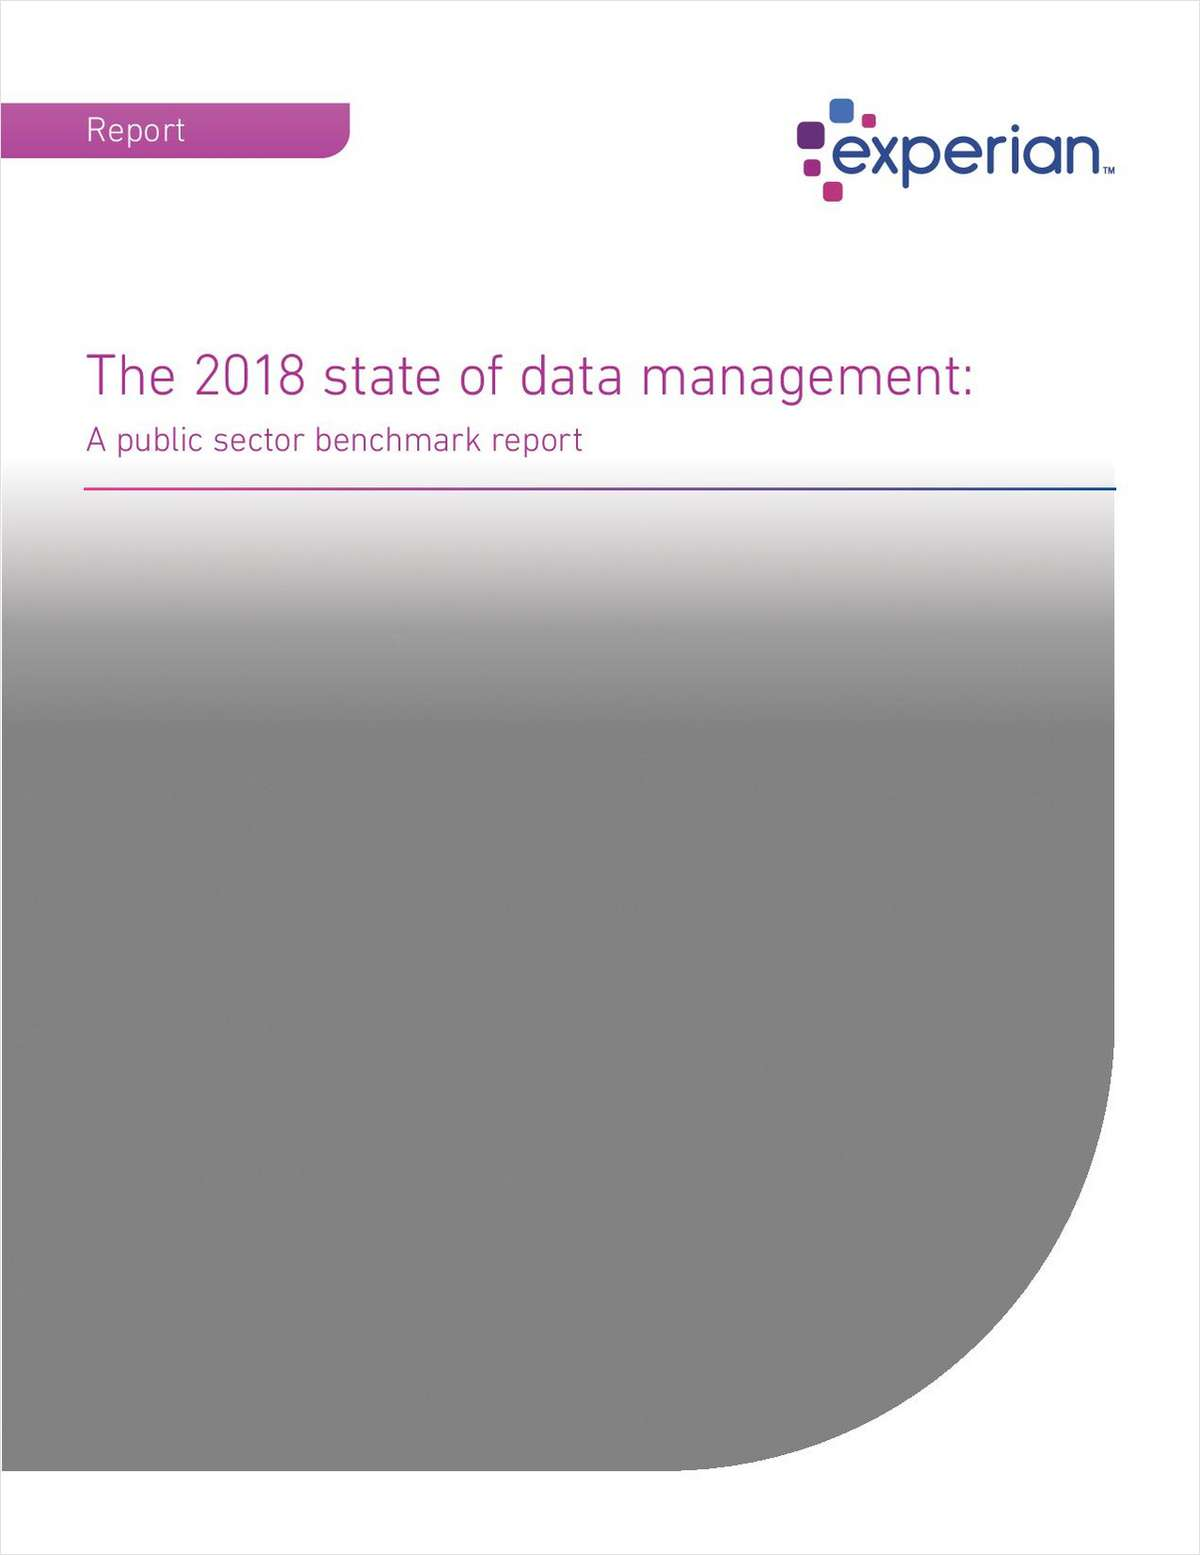 The 2018 state of data management: A public sector benchmark report